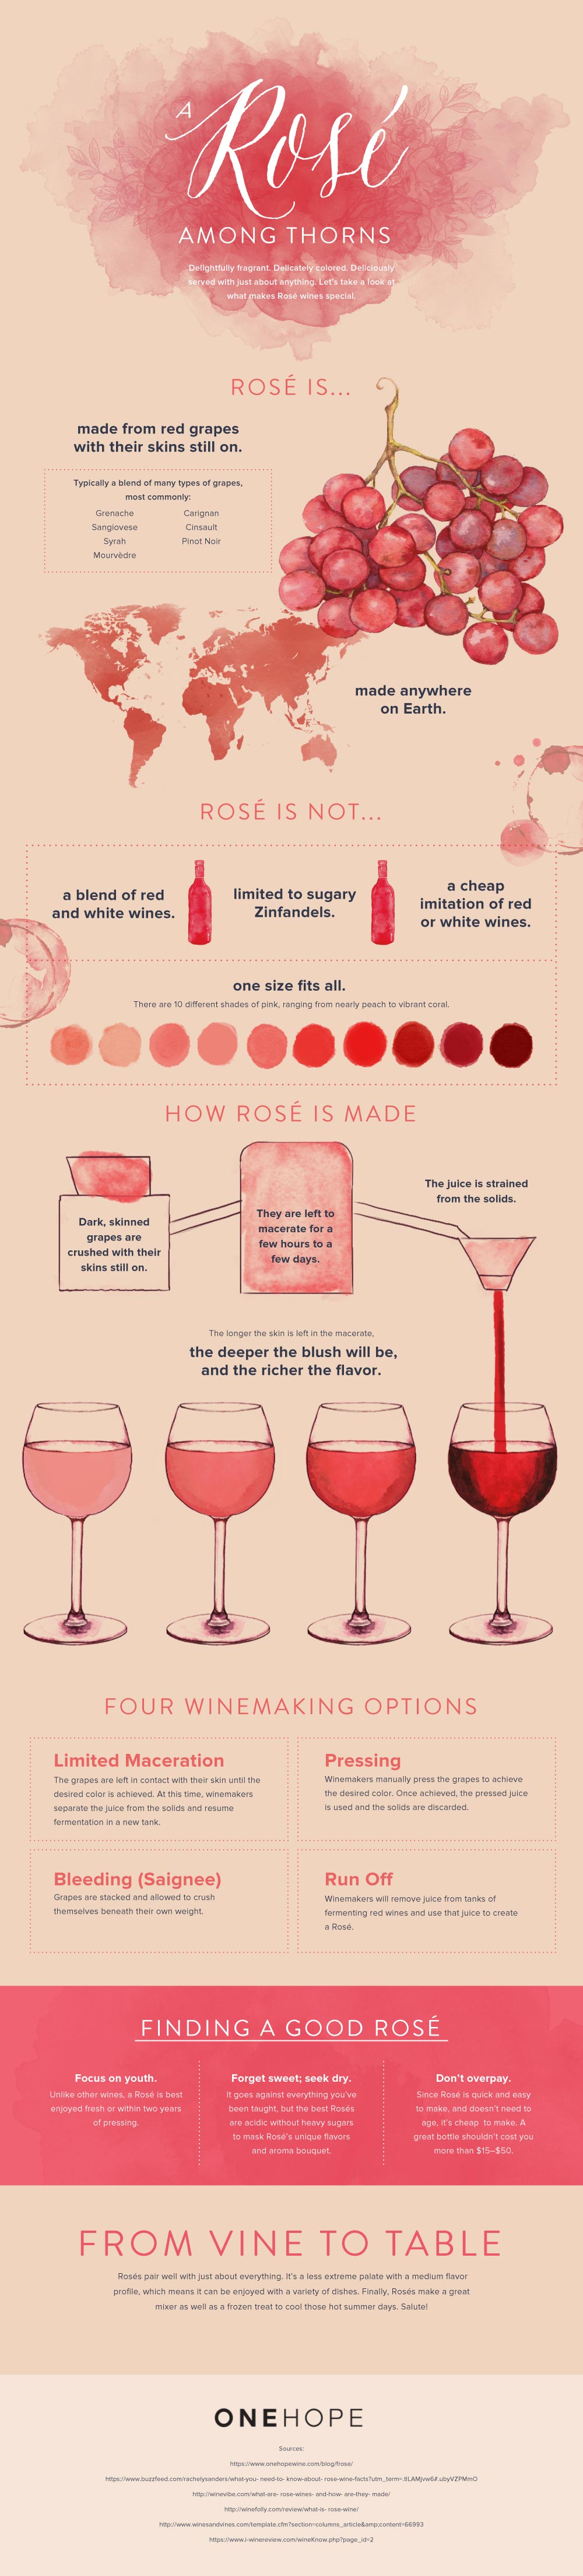 Rosé 101: Everything You Need To Know About This Delicious Wine